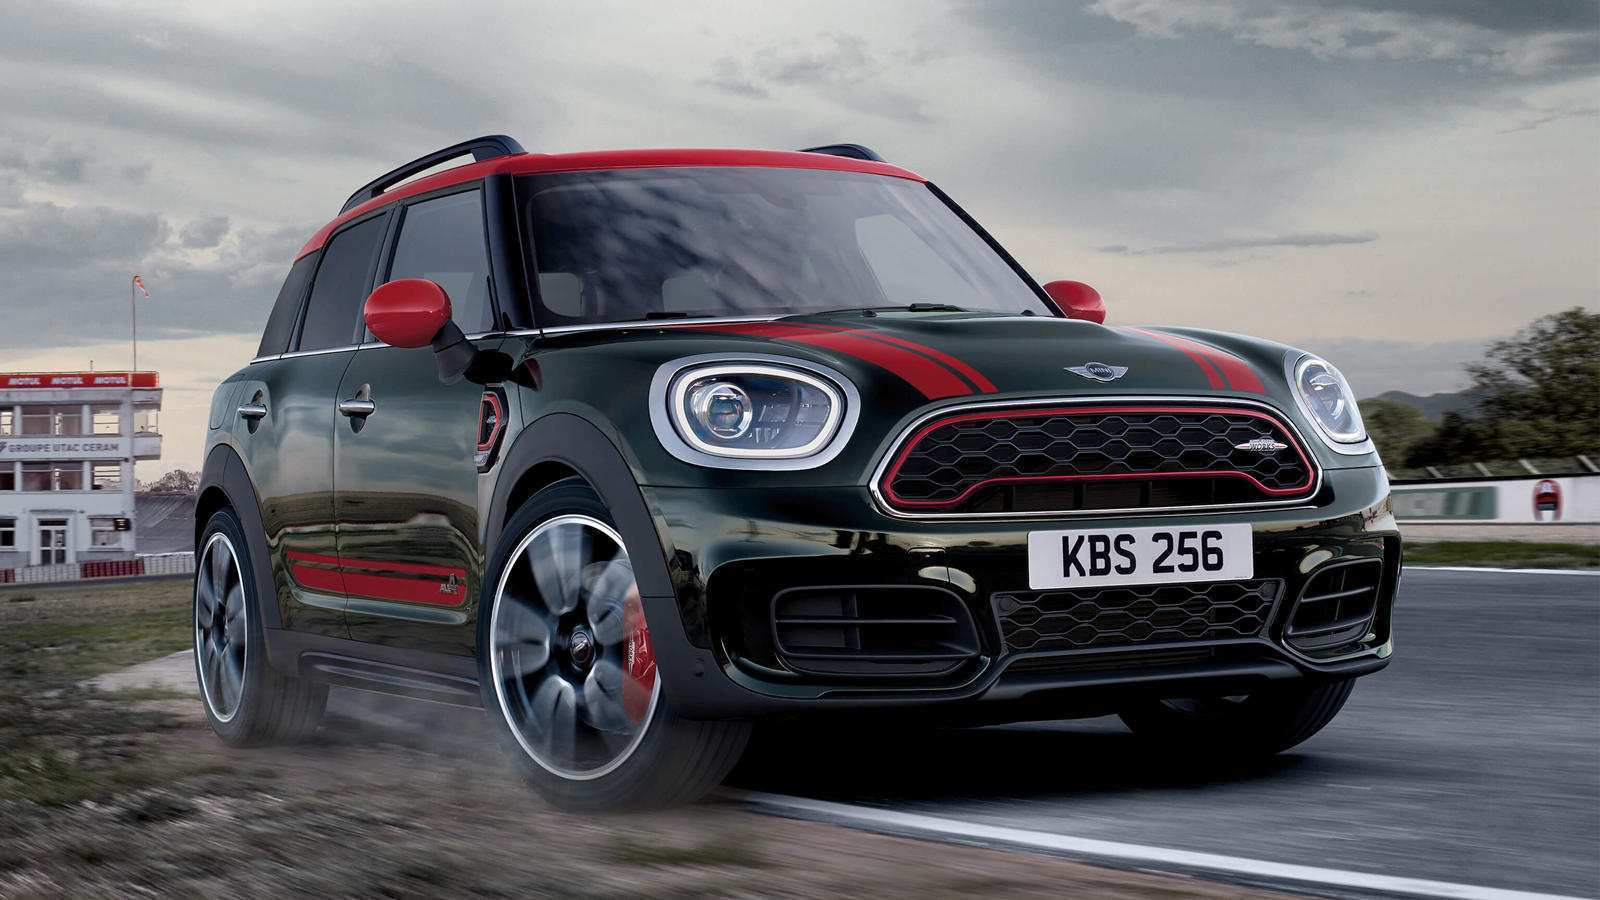 73 The Best 2020 Mini Cooper Clubman Concept